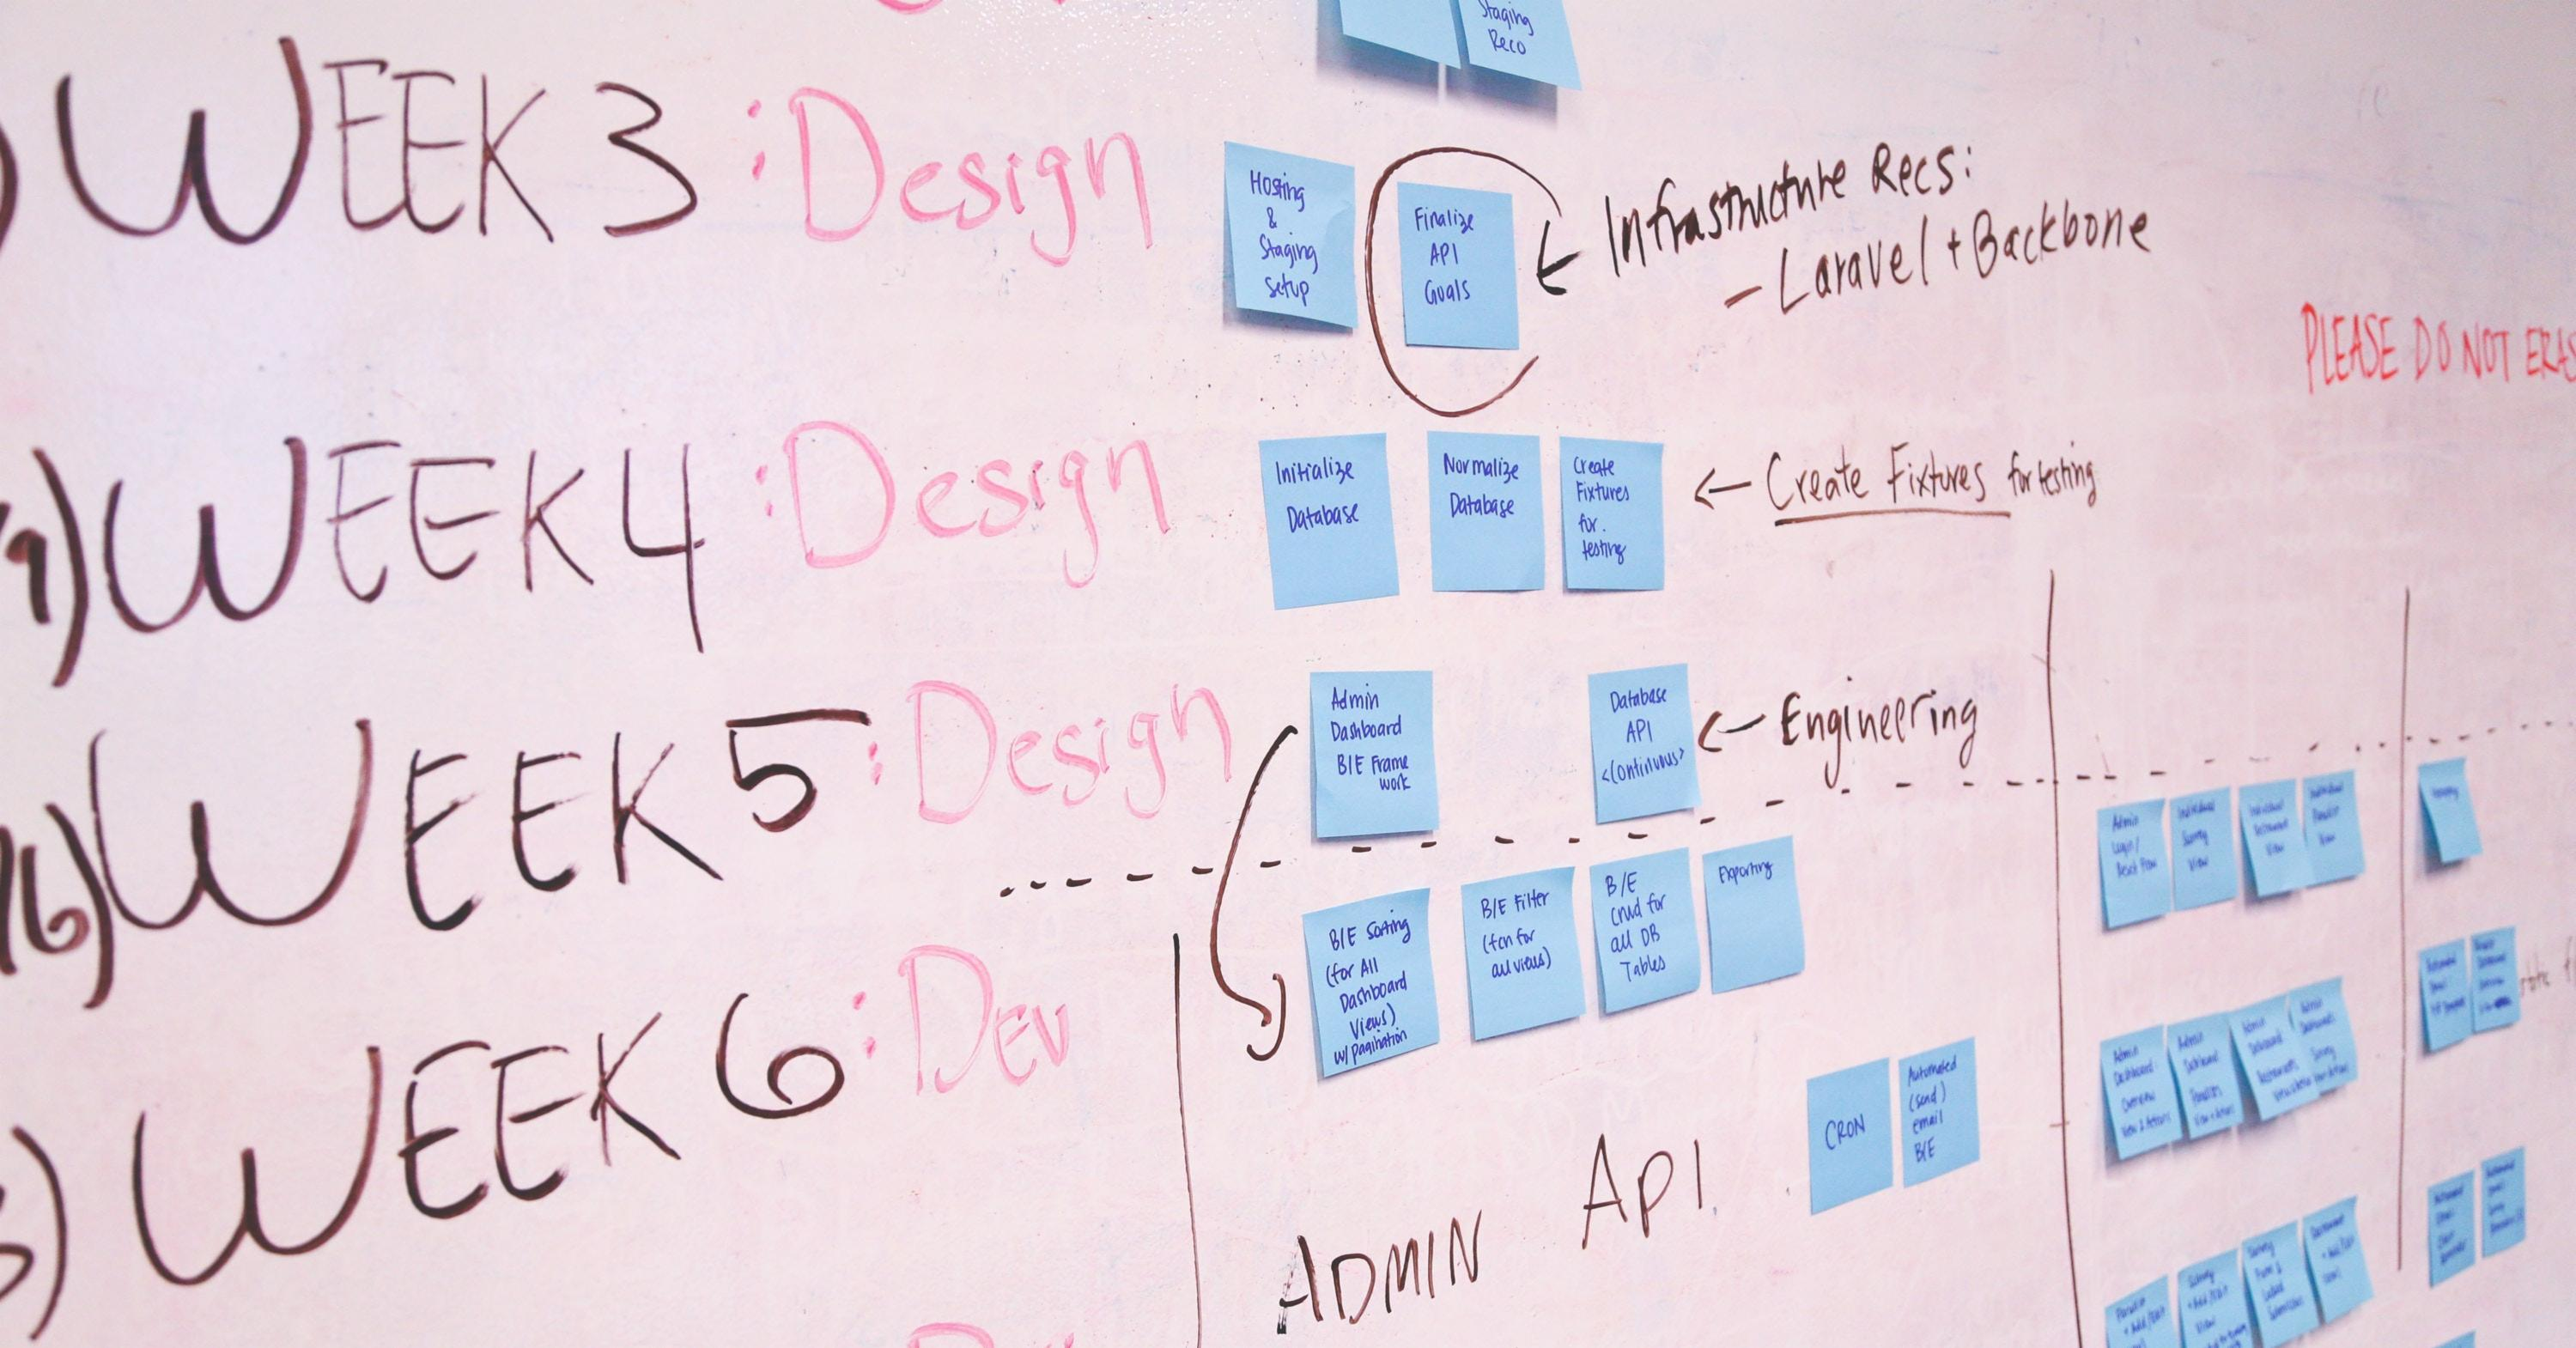 Companies using agile methods [5 reading tips]